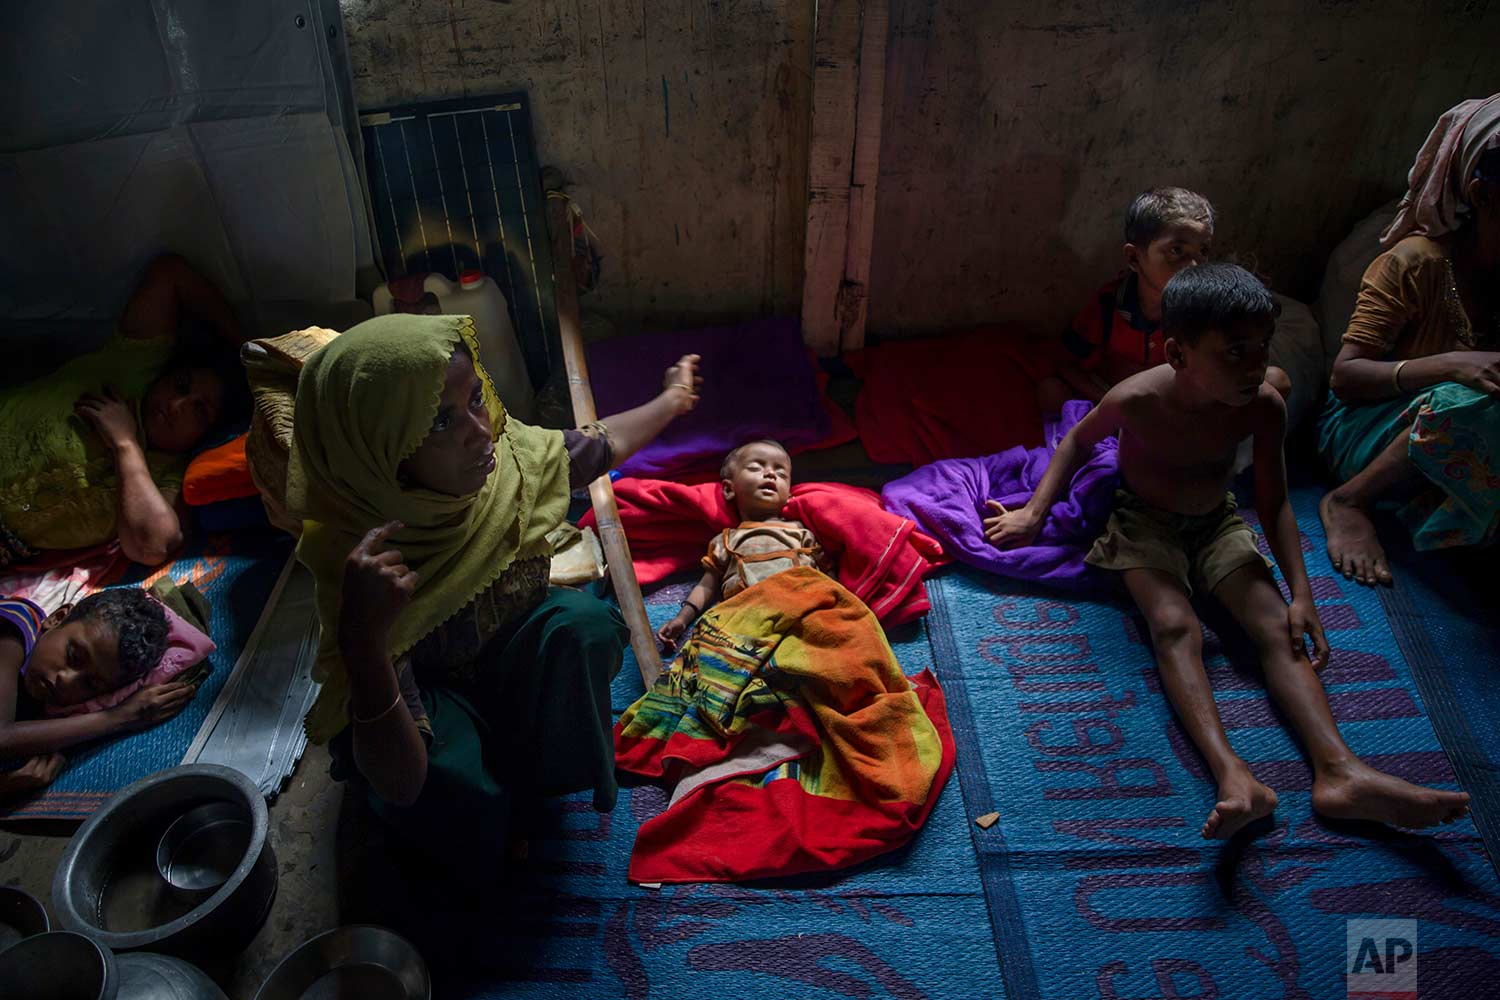 A Rohingya Muslim woman keeps flies away from her sick daughter as she waits inside a classroom of a school to be registered which will then allow them to proceed to build a shelter in Kutupalong refugee camp, Bangladesh, Friday, Oct. 20, 2017. (AP Photo/Dar Yasin)